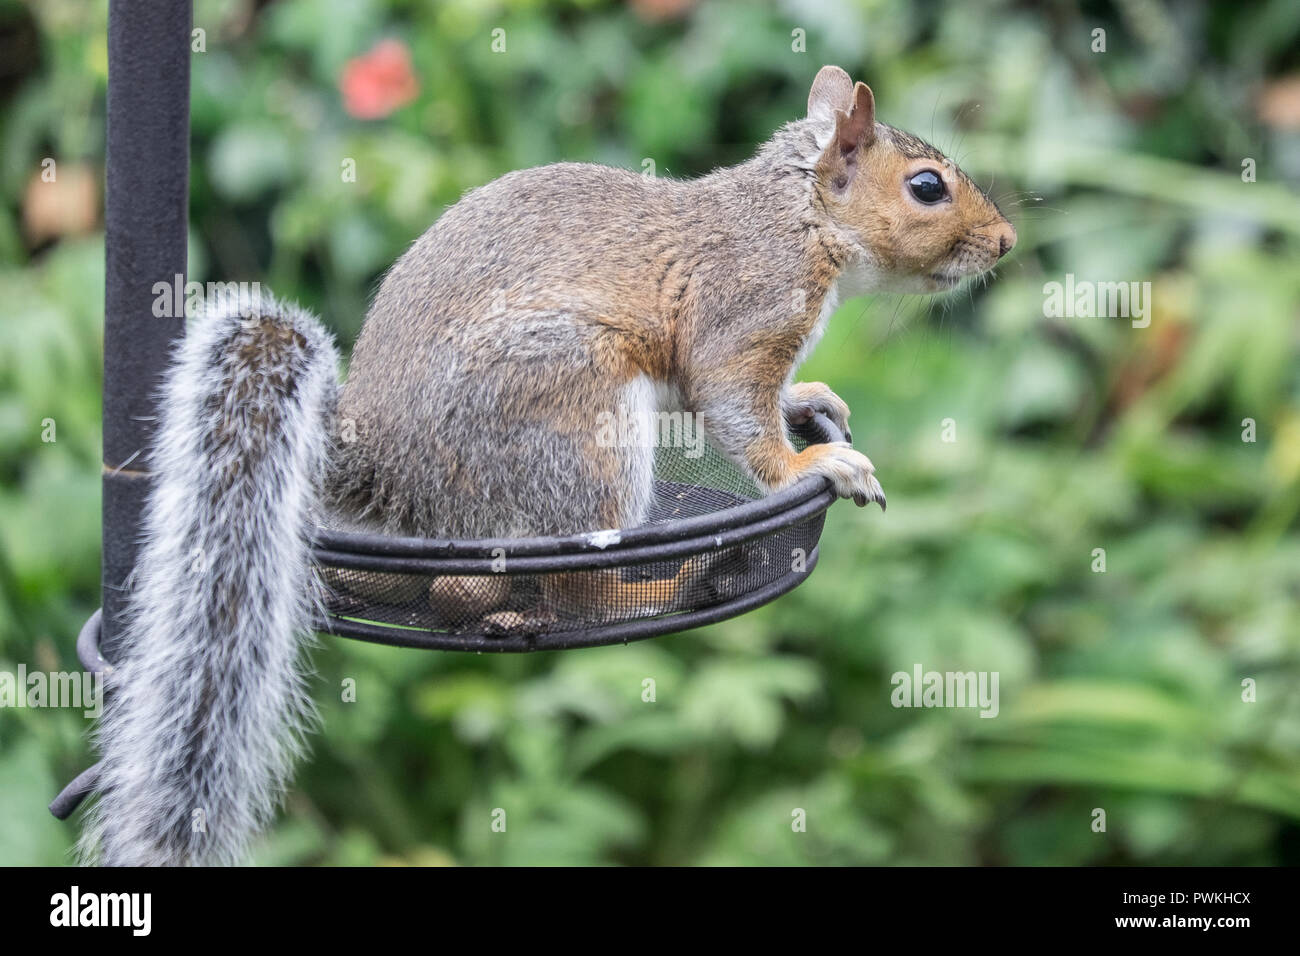 Squirrel eating nuts - Stock Image